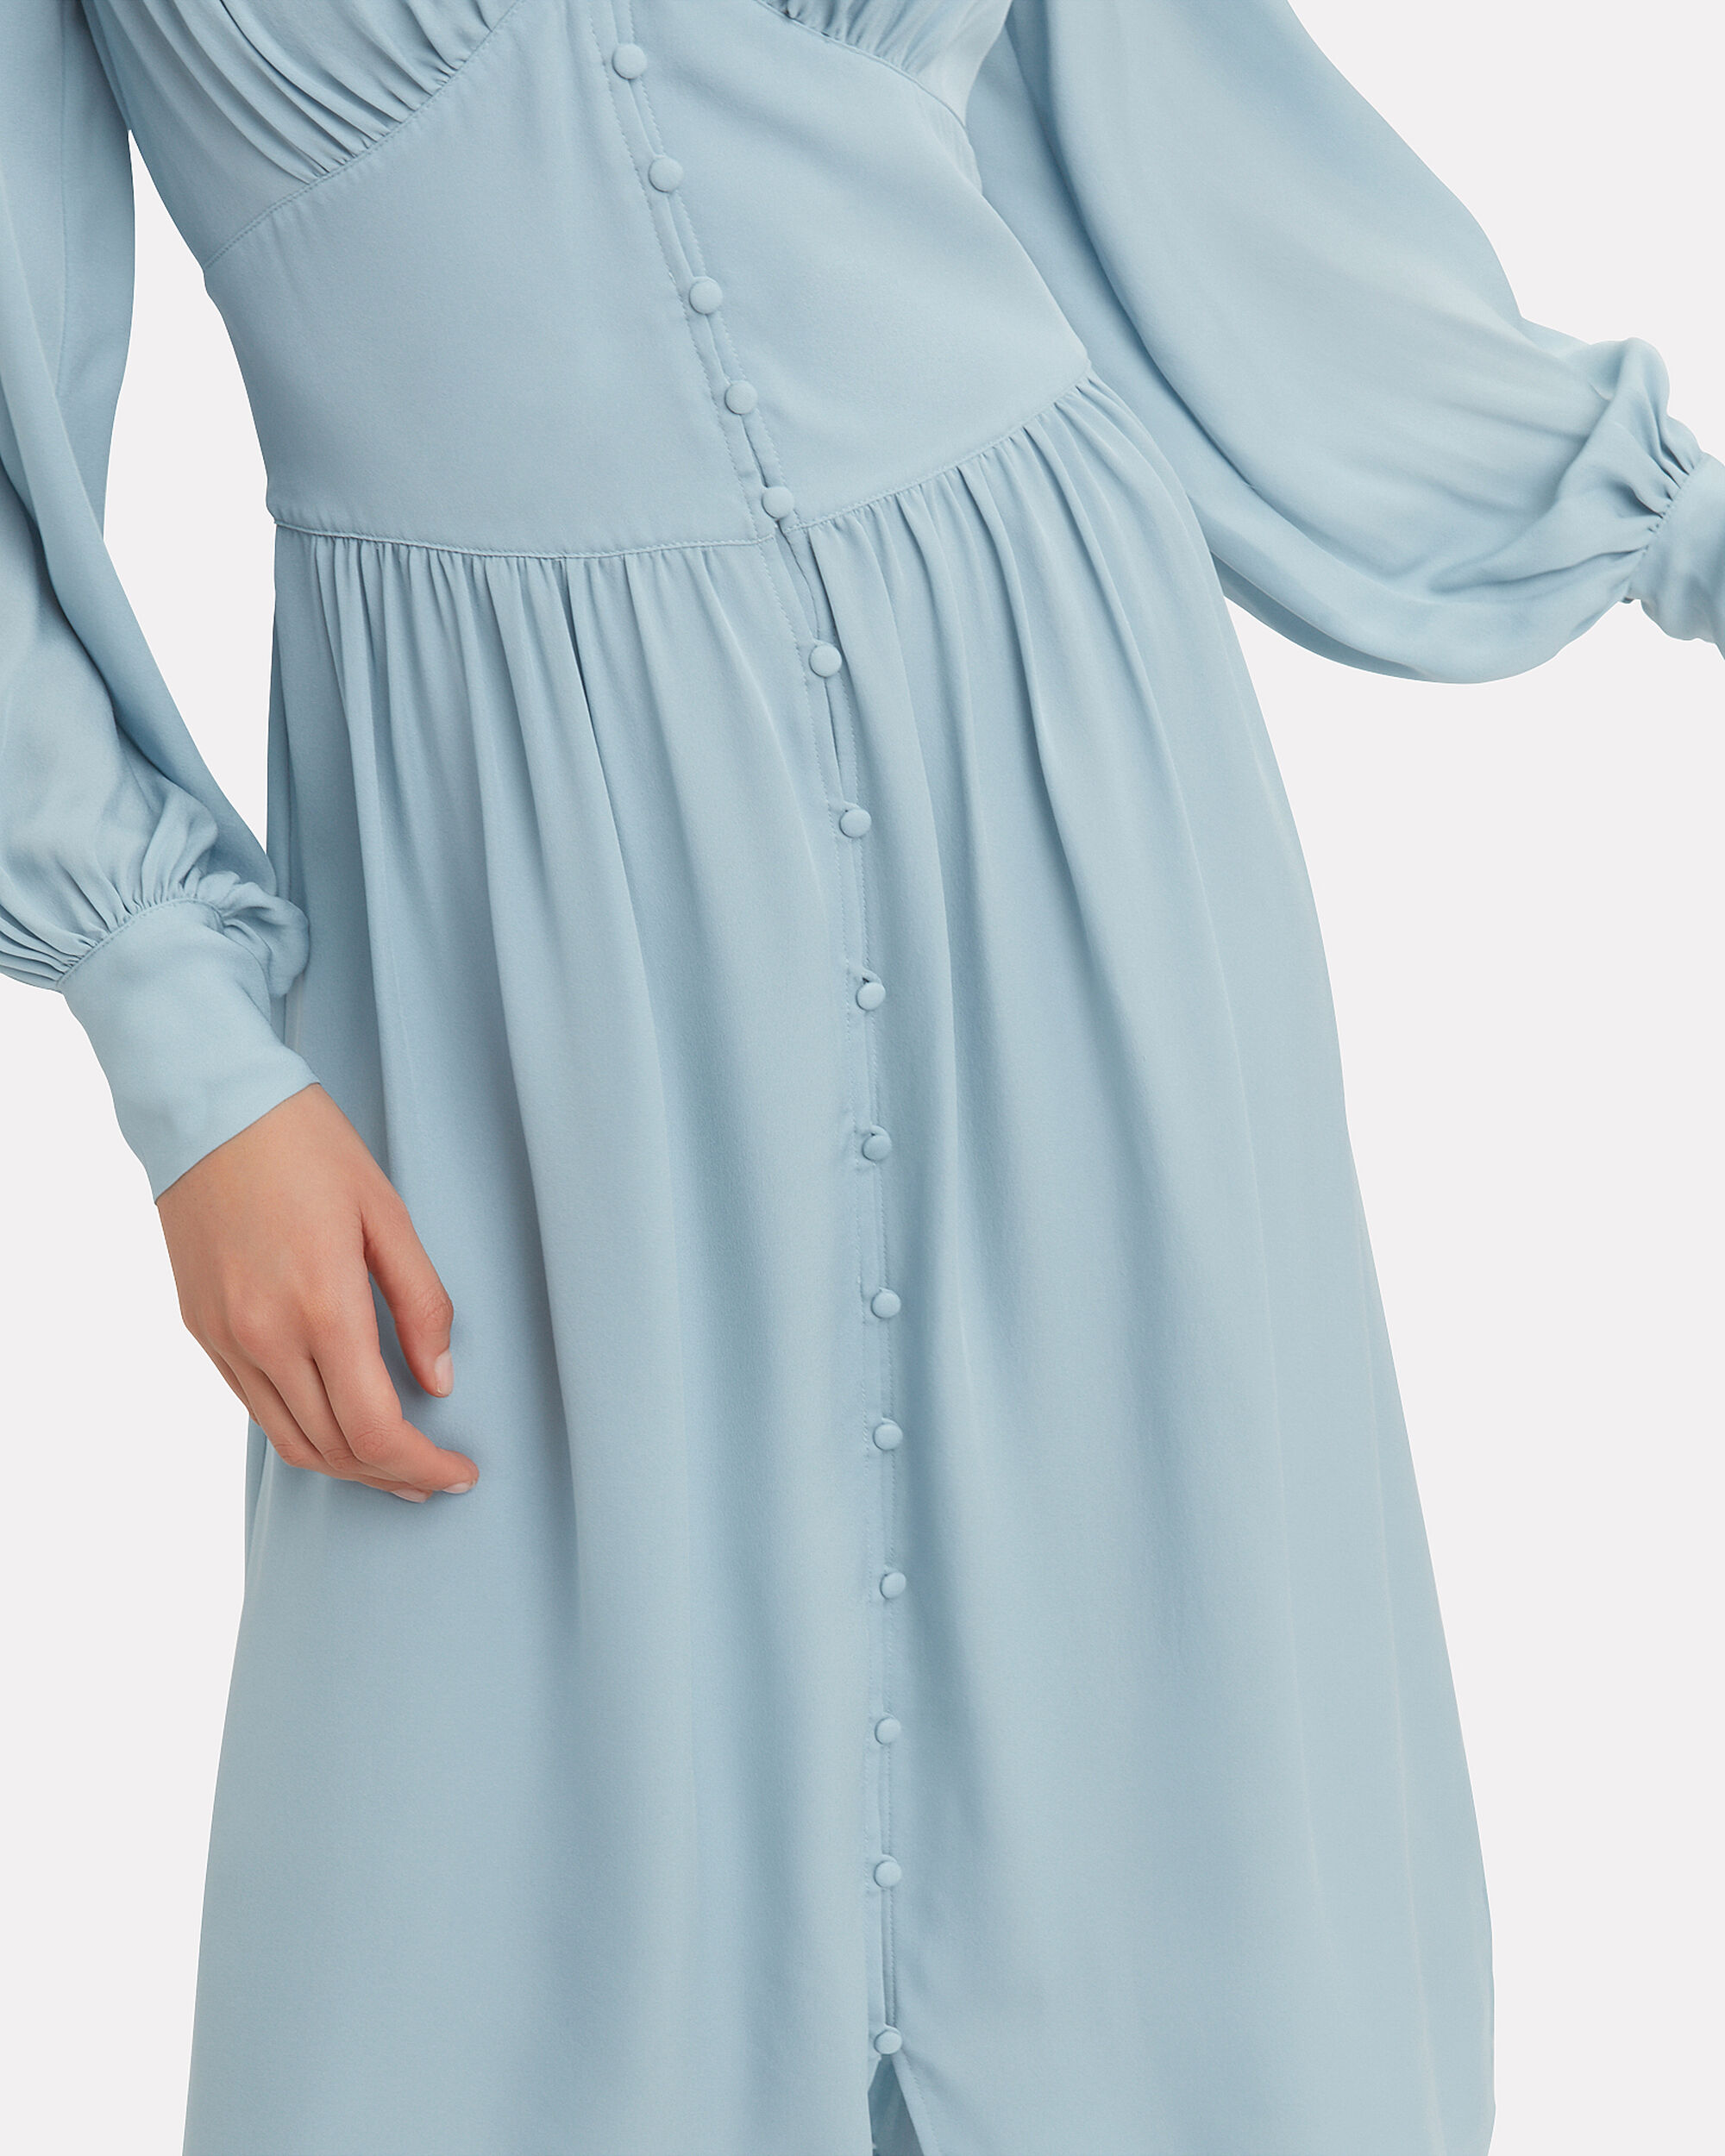 Kyria Midi Dress, LIGHT BLUE, hi-res